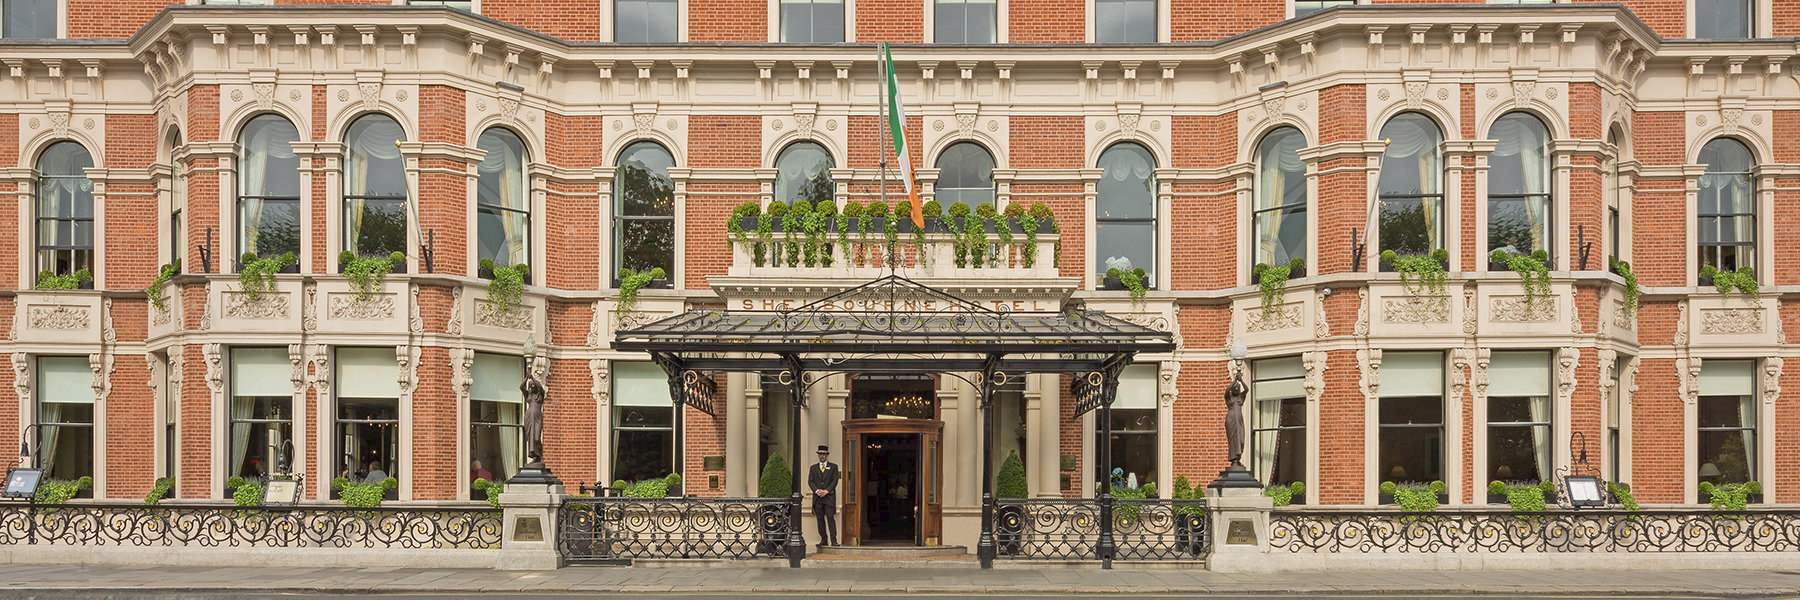 The Shelbourne Hotel, Dublin